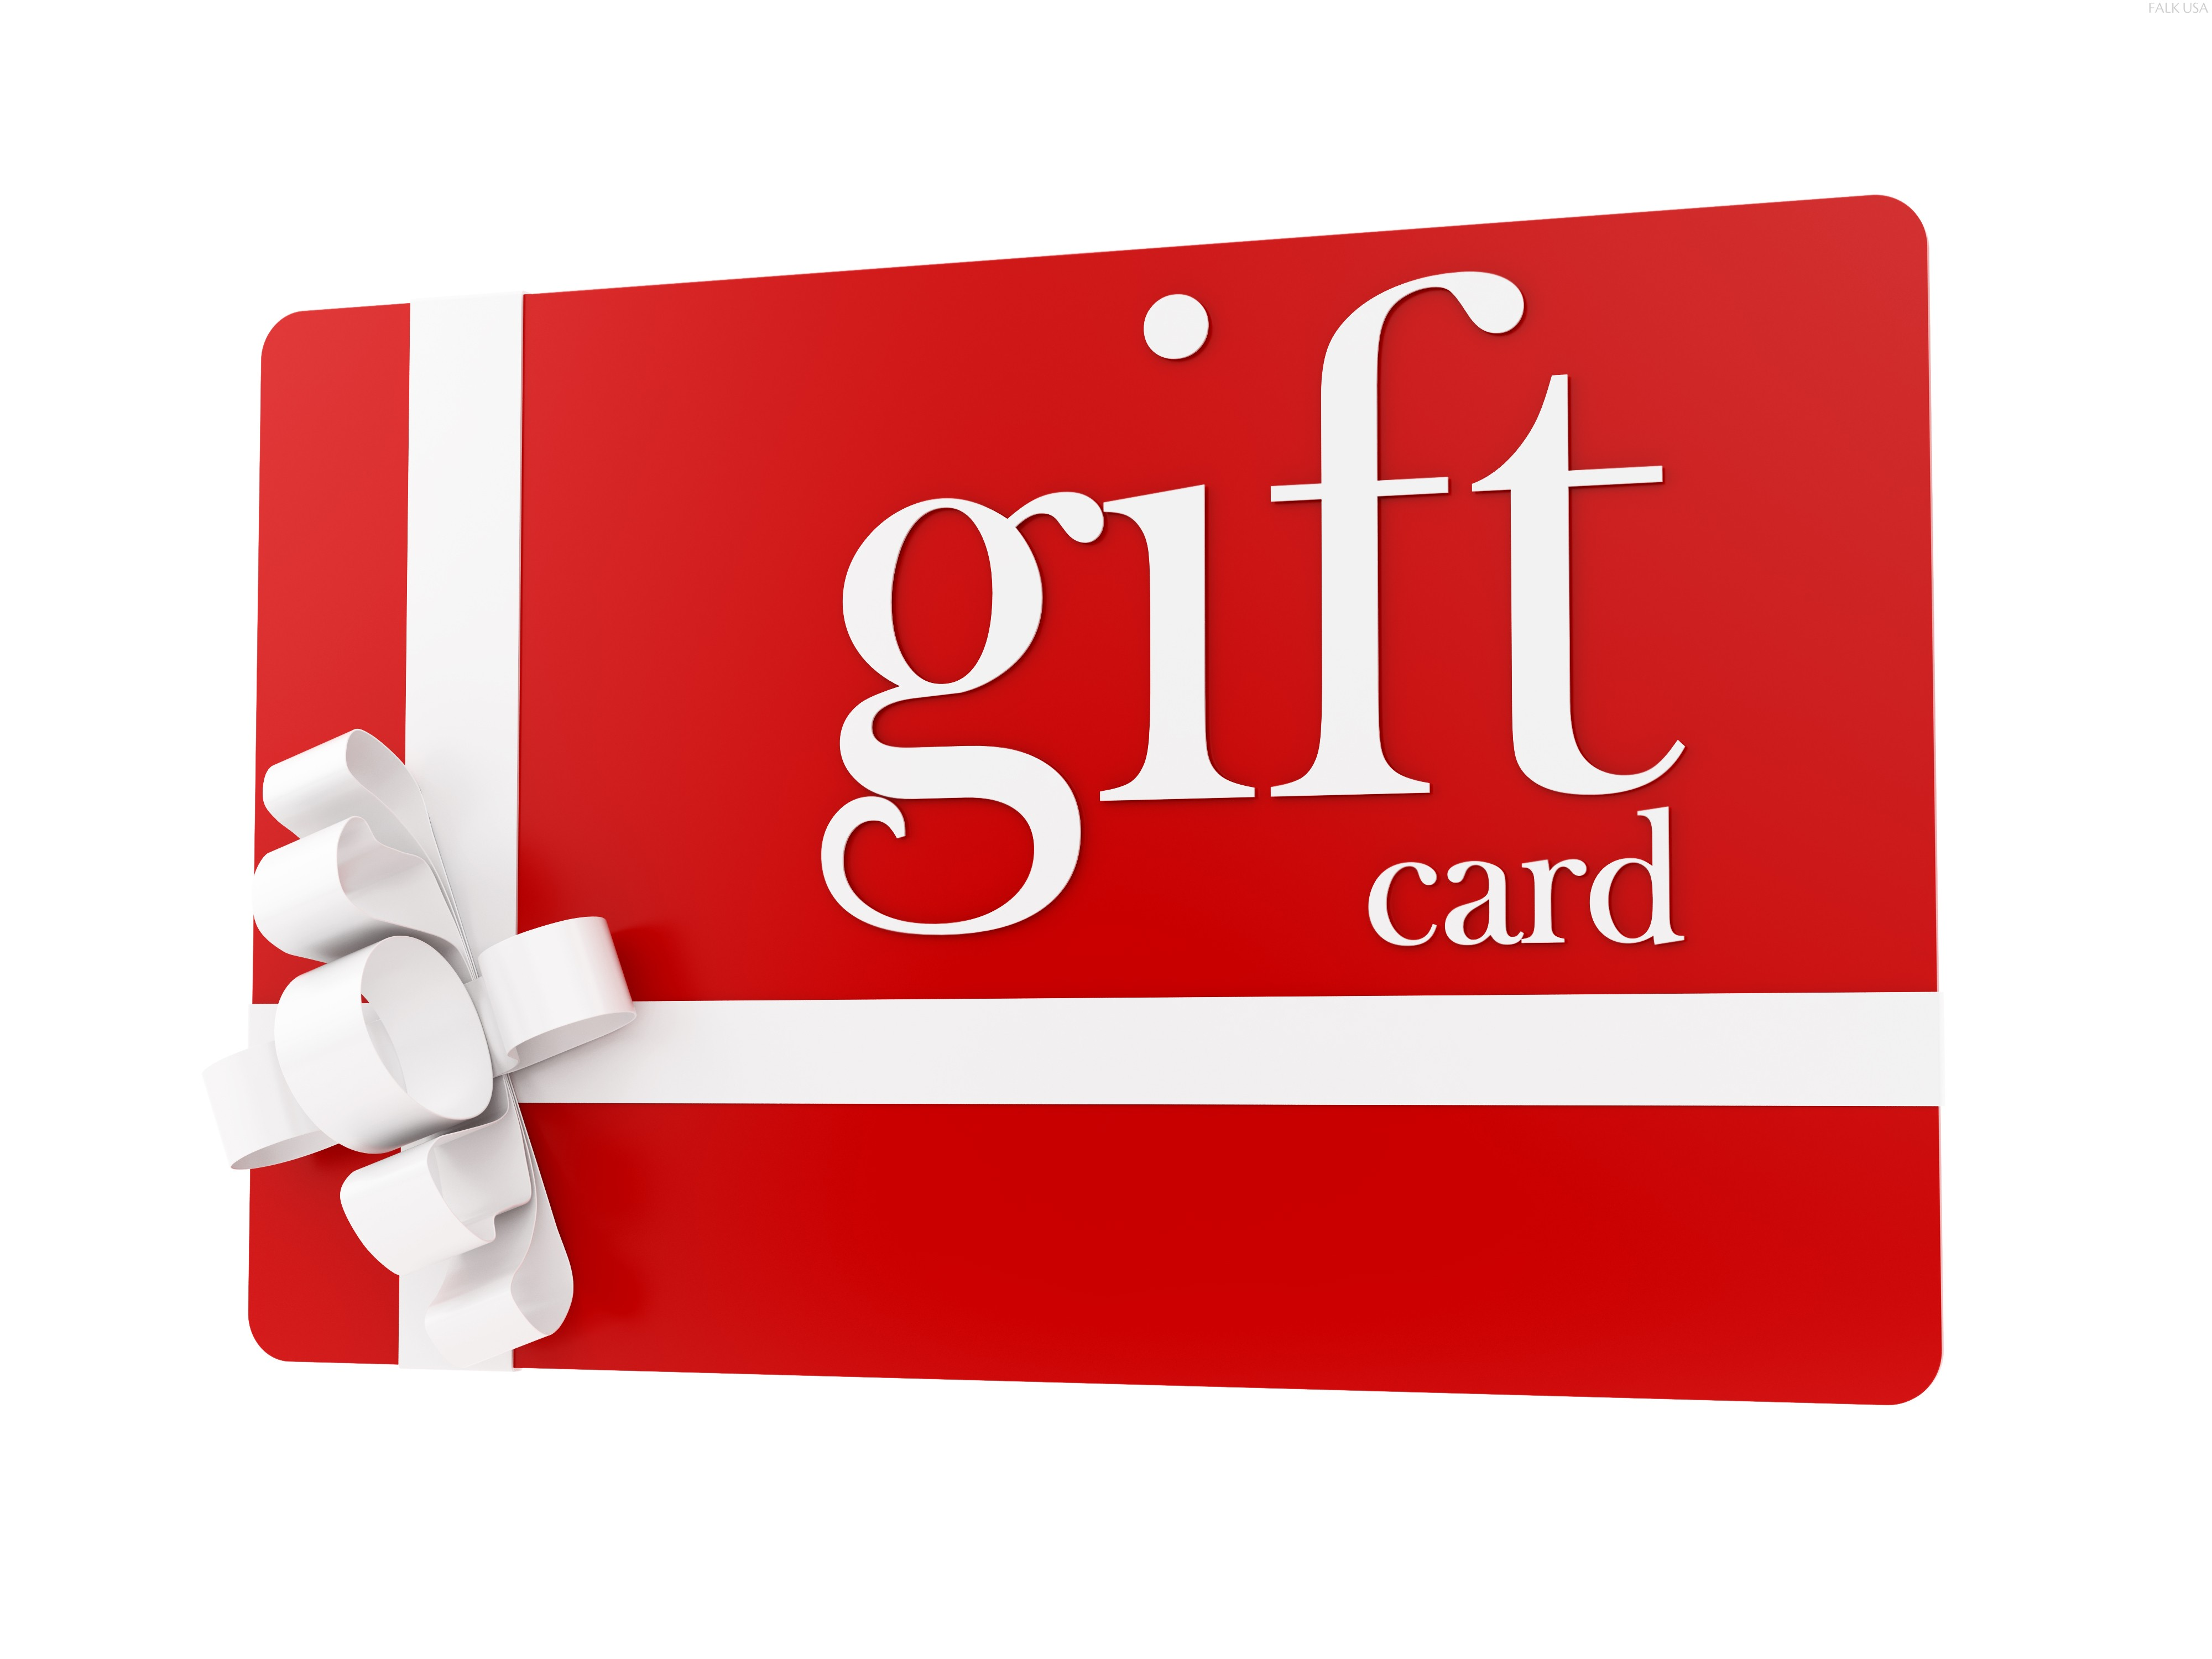 In stores just present the Walmart gift card at checkout. Online enter the gift card number and the PIN, which is listed on the back of gift card, during checkout. The PIN provides a more secure online shopping experience. As you make purchases, the gift card amount decreases. You can add to the gift card balance anytime at a Walmart store.